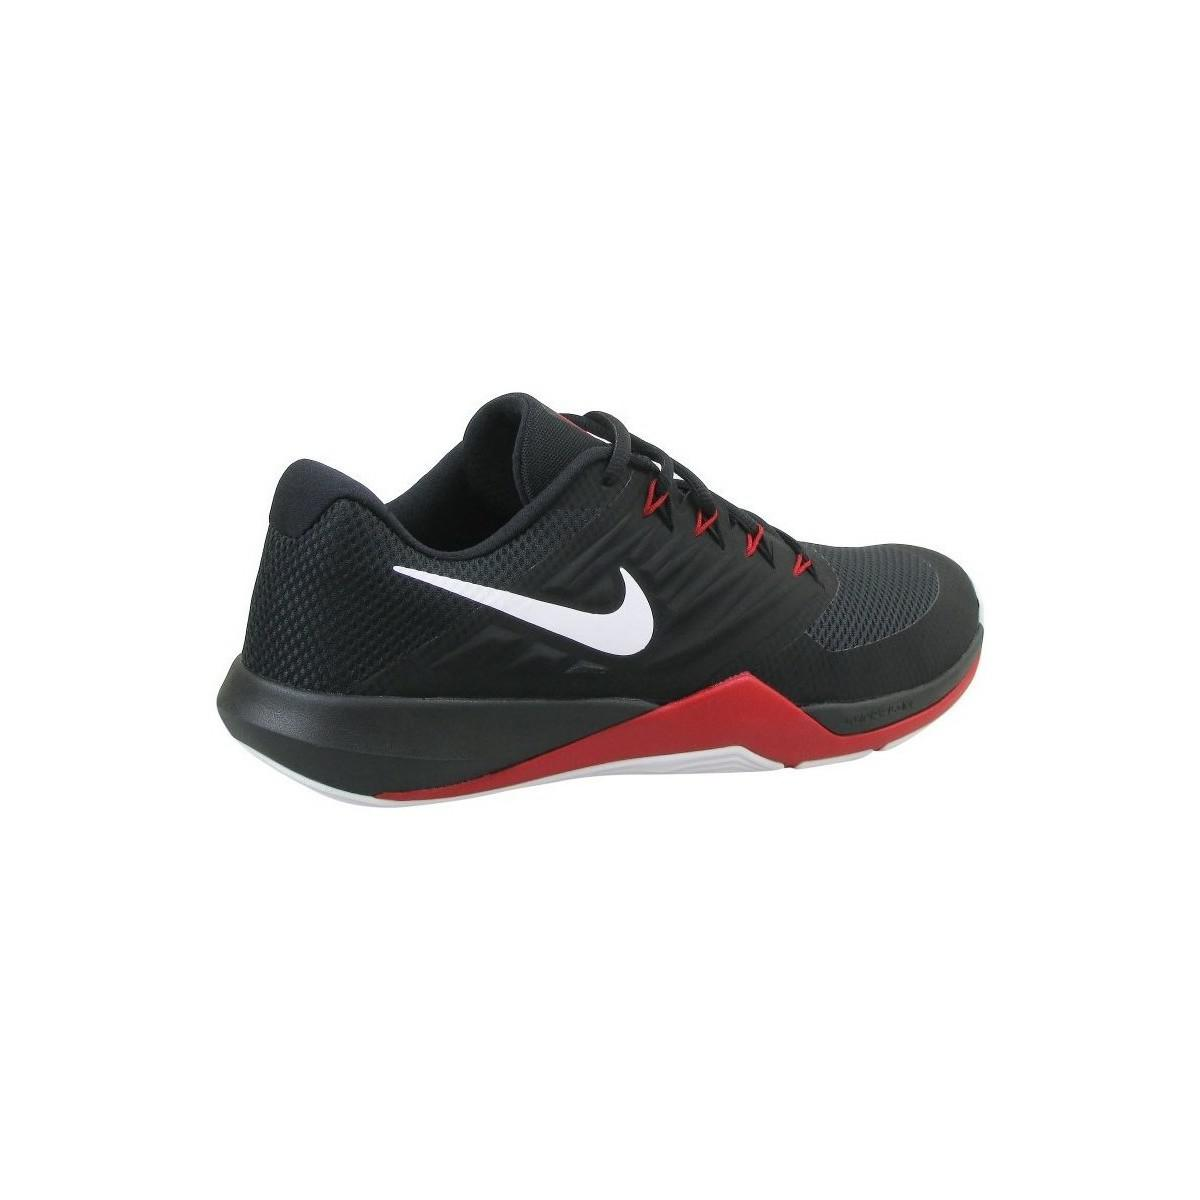 Nike Lunar Prime Iron Ii Men's Shoes (trainers) In Multicolour in Black for Men